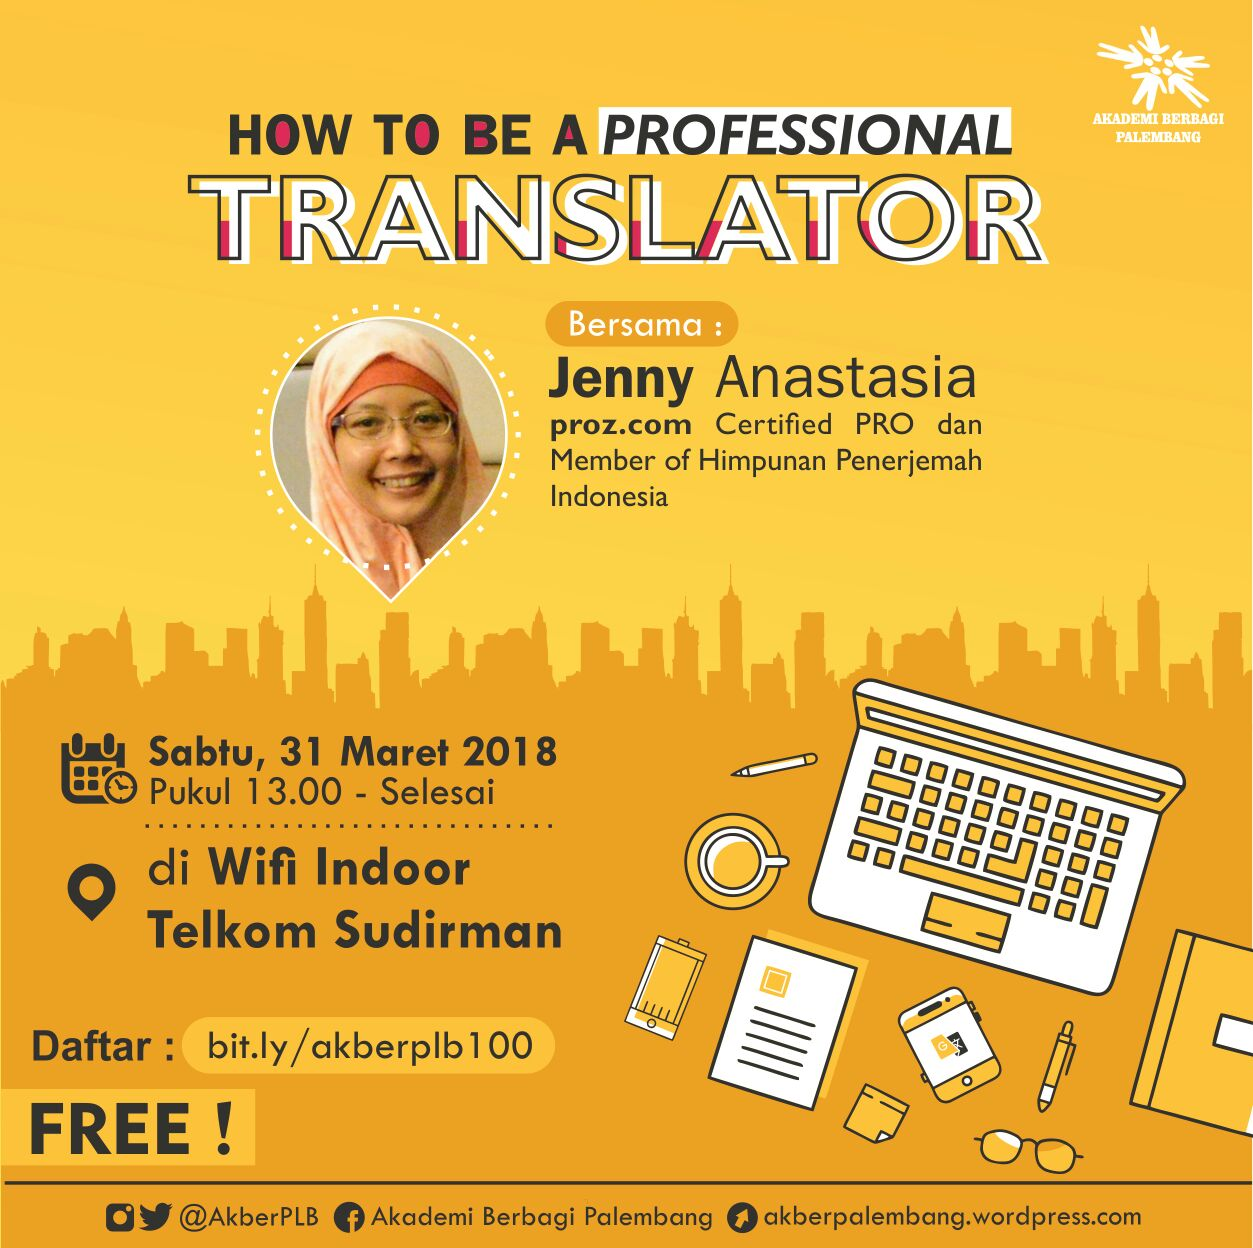 Palembang: How To Be A Professional Translator